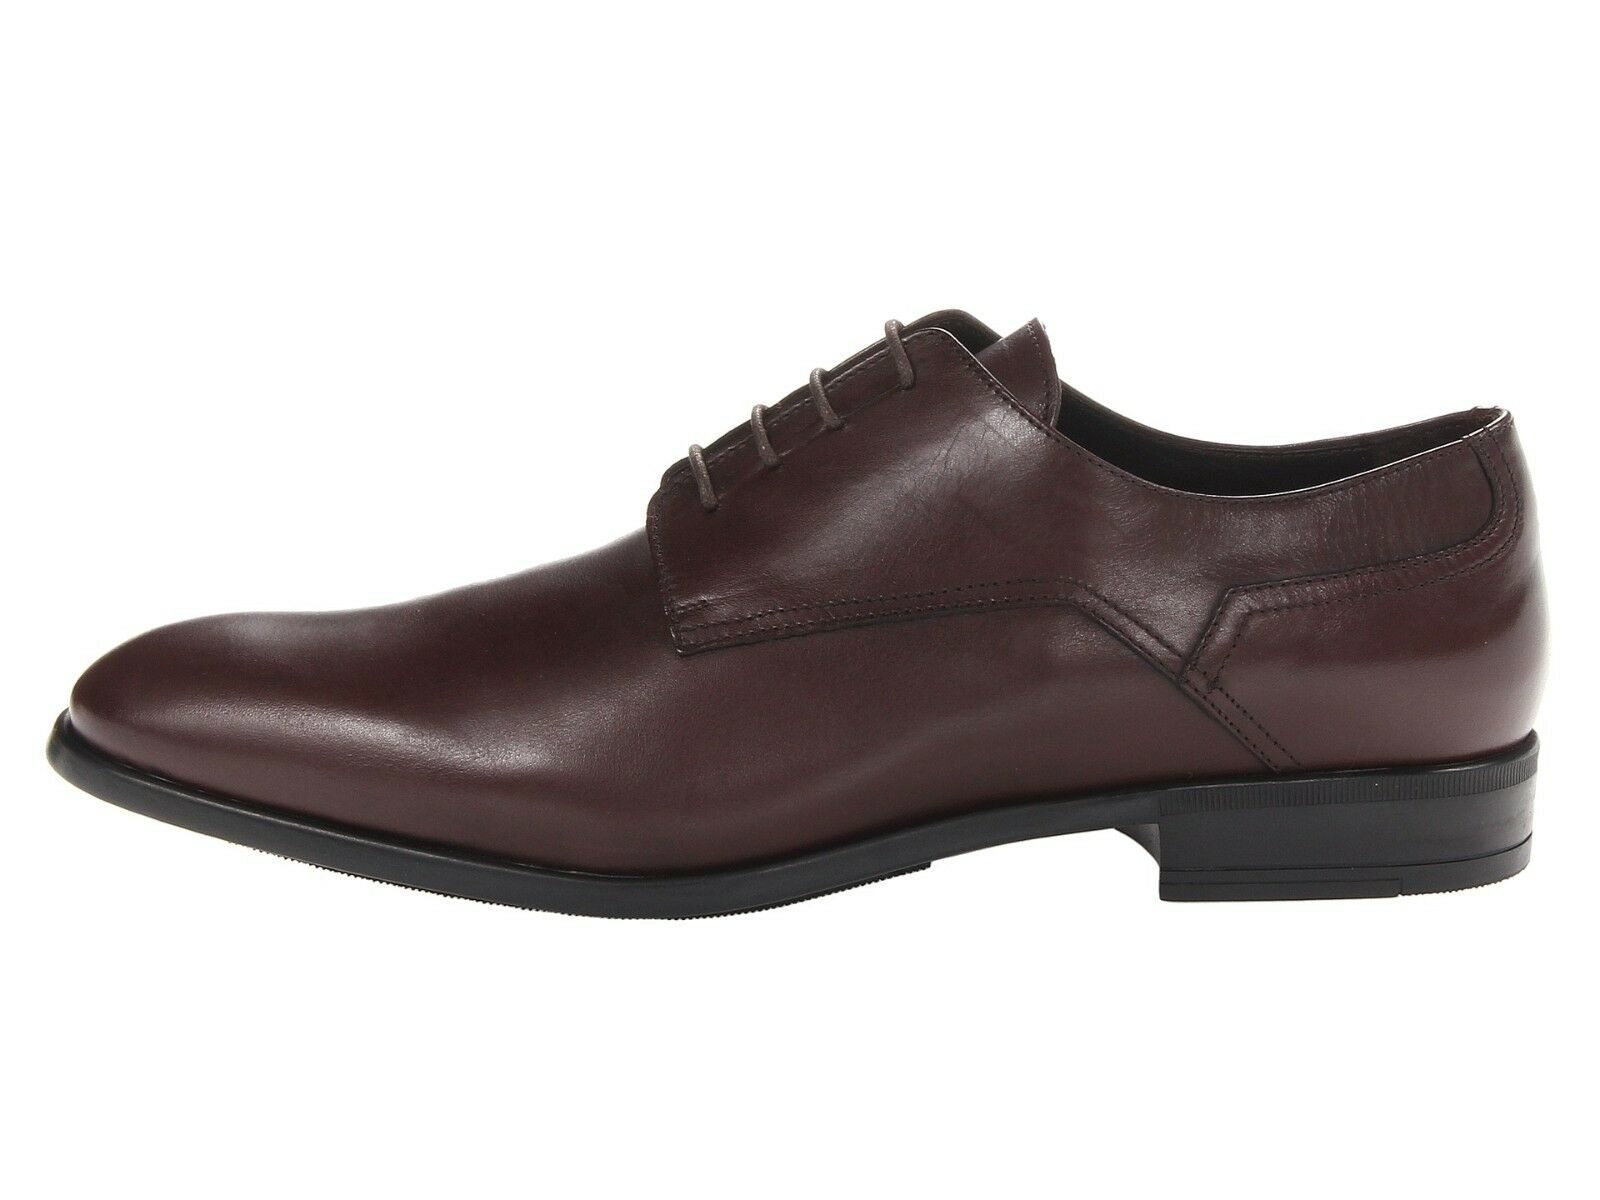 BRUNO MAGLI Maitland Men's Leather Oxford Dress Formal SHOES US8 - US10.5  Italy